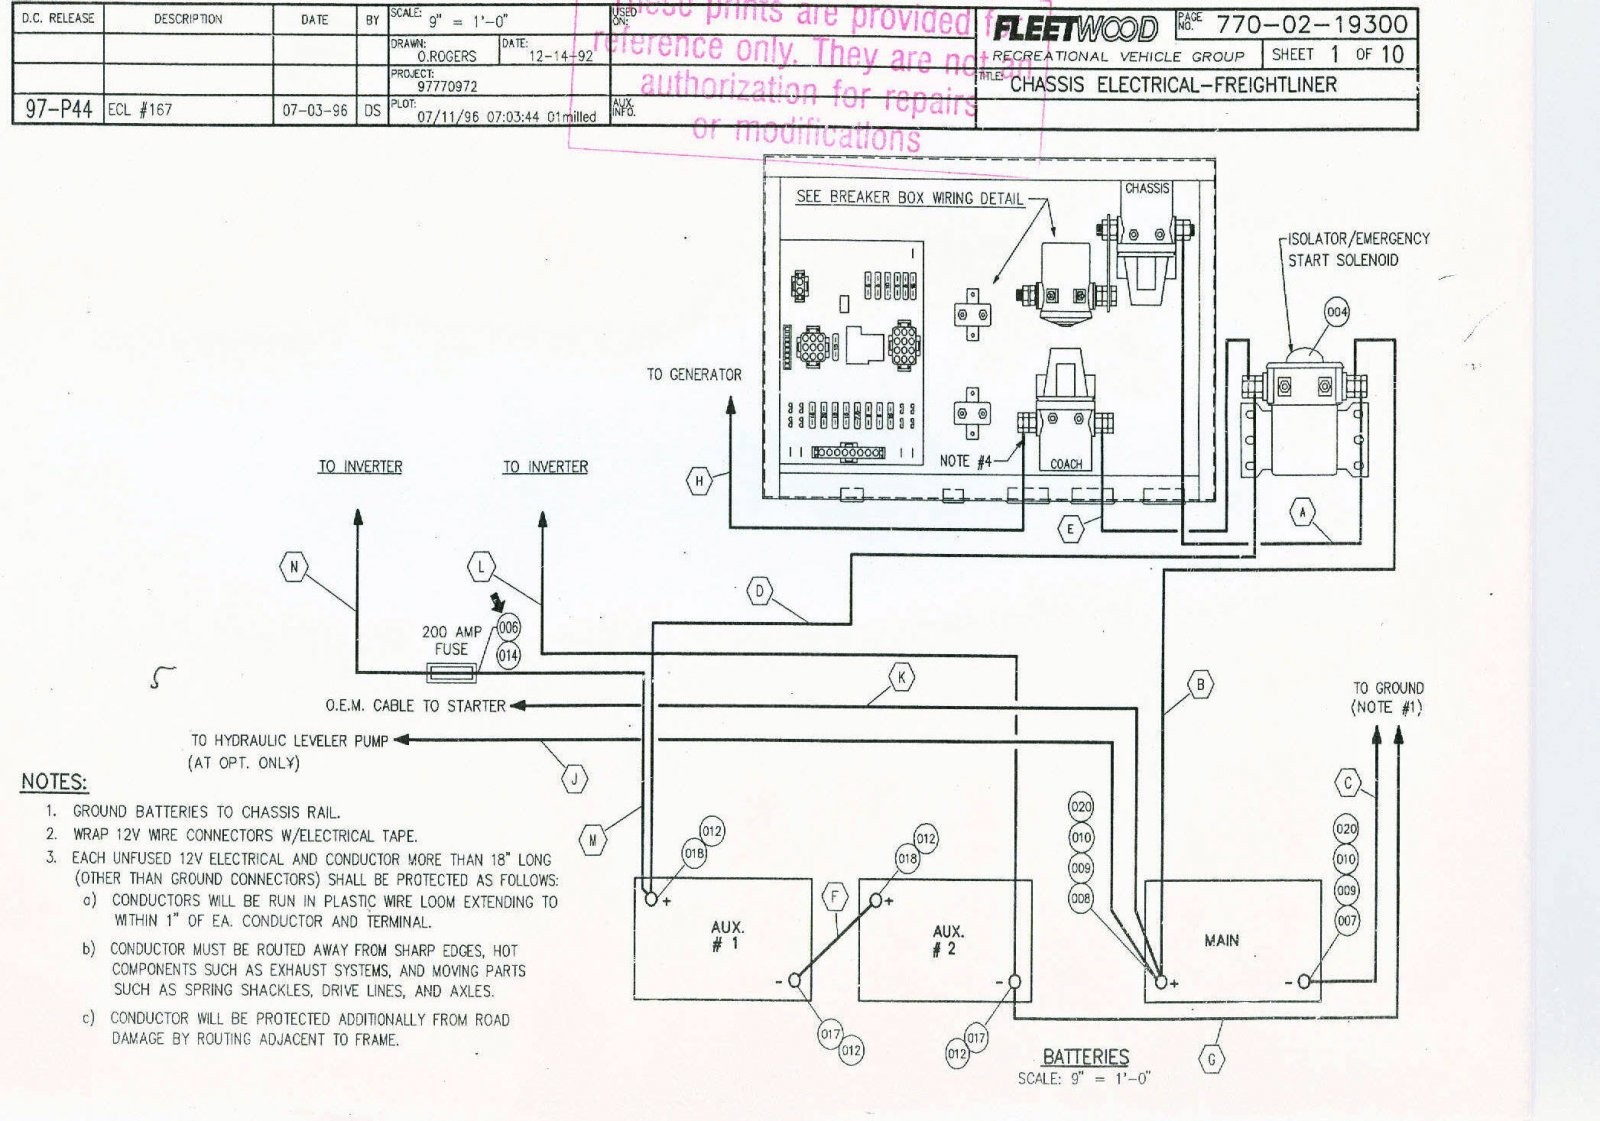 DIAGRAM] 1985 Pace Arrow Wiring Diagram FULL Version HD Quality Wiring  Diagram - SCARYDIAGRAMS.GENAZZANOBUONCONSIGLIO.ITscarydiagrams.genazzanobuonconsiglio.it